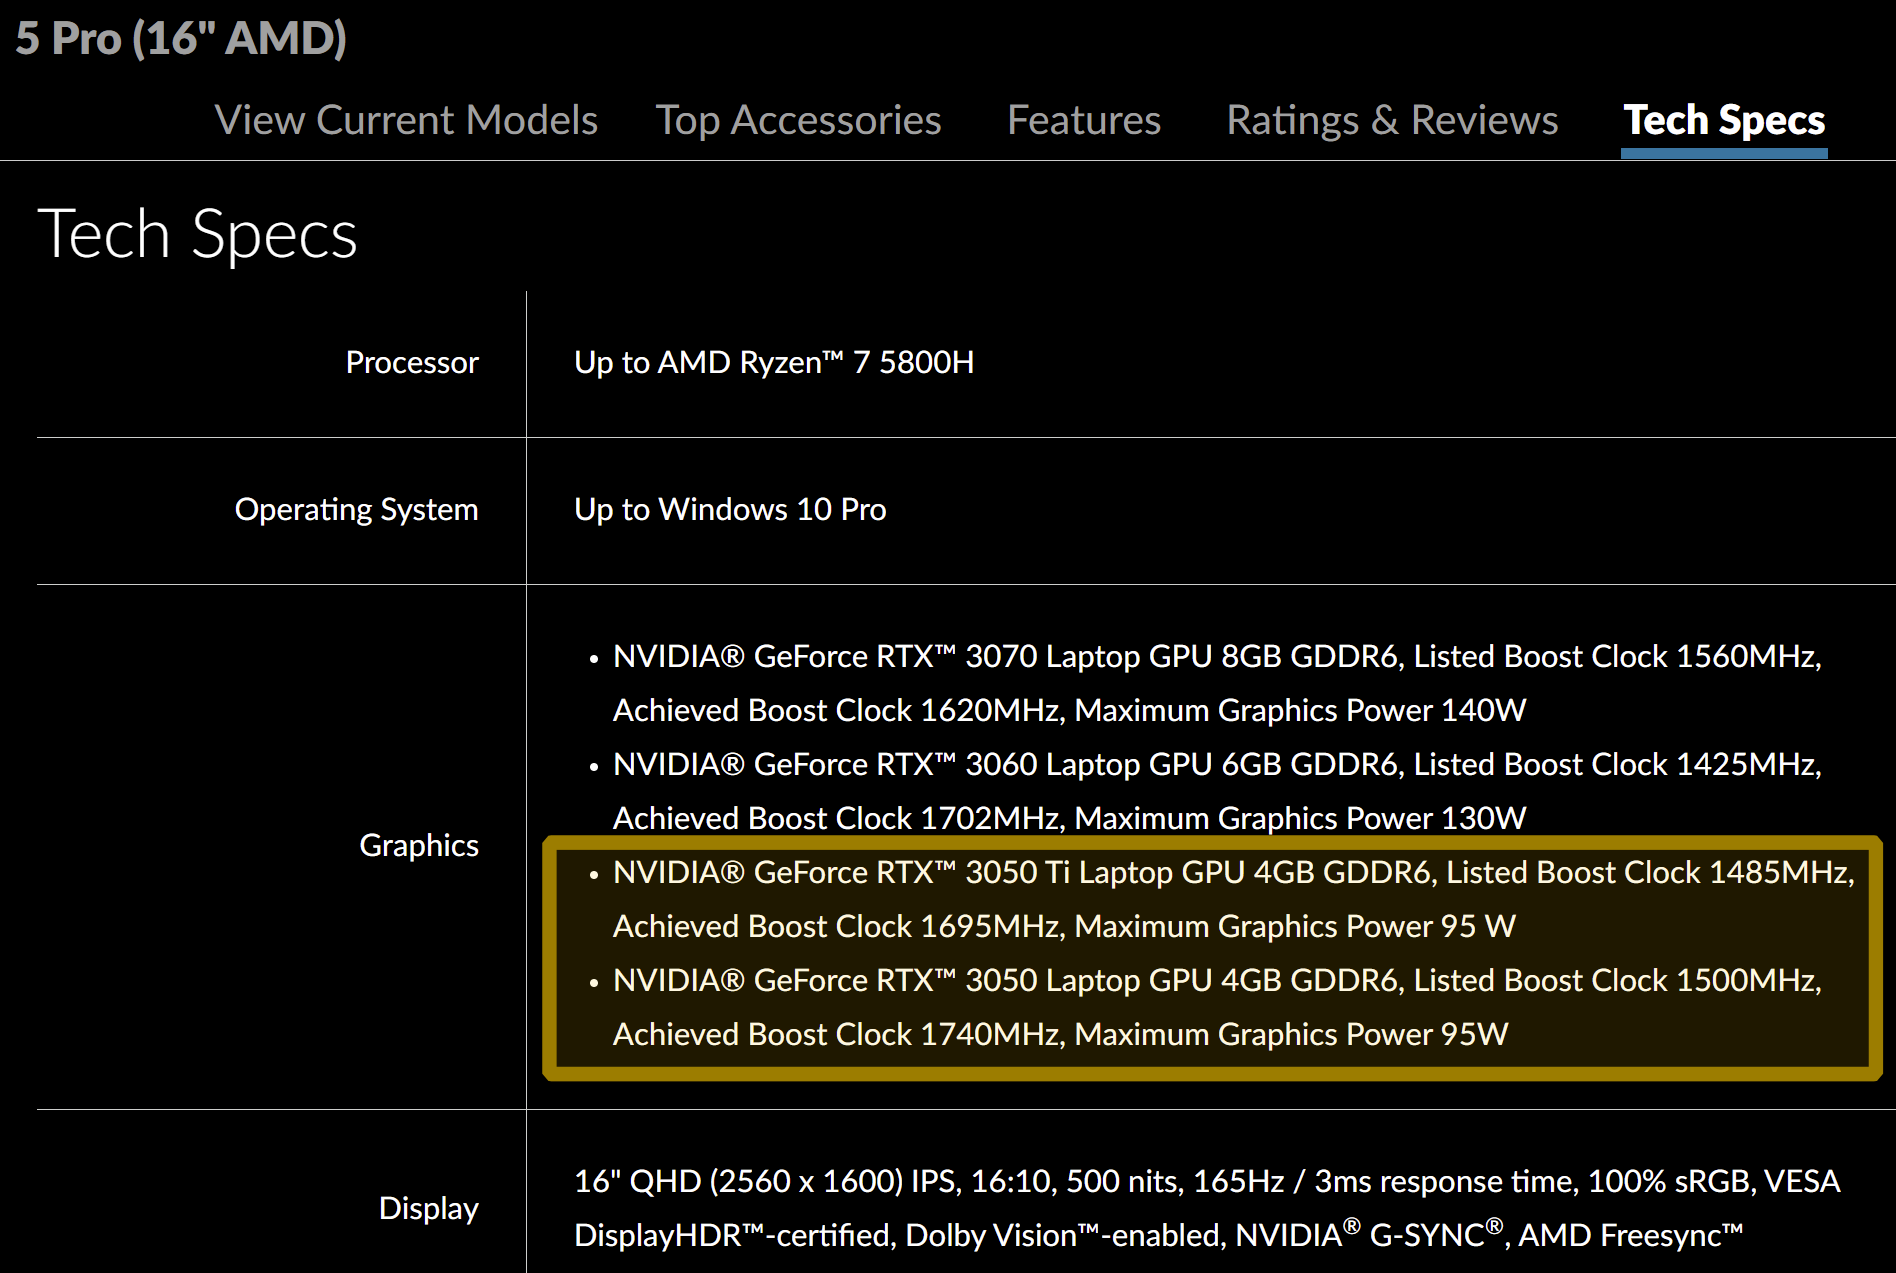 NVIDIA GeForce RTX 3050 Ti and GeForce RTX 3050 Laptop GPU Specifications Confirmed by Lenovo